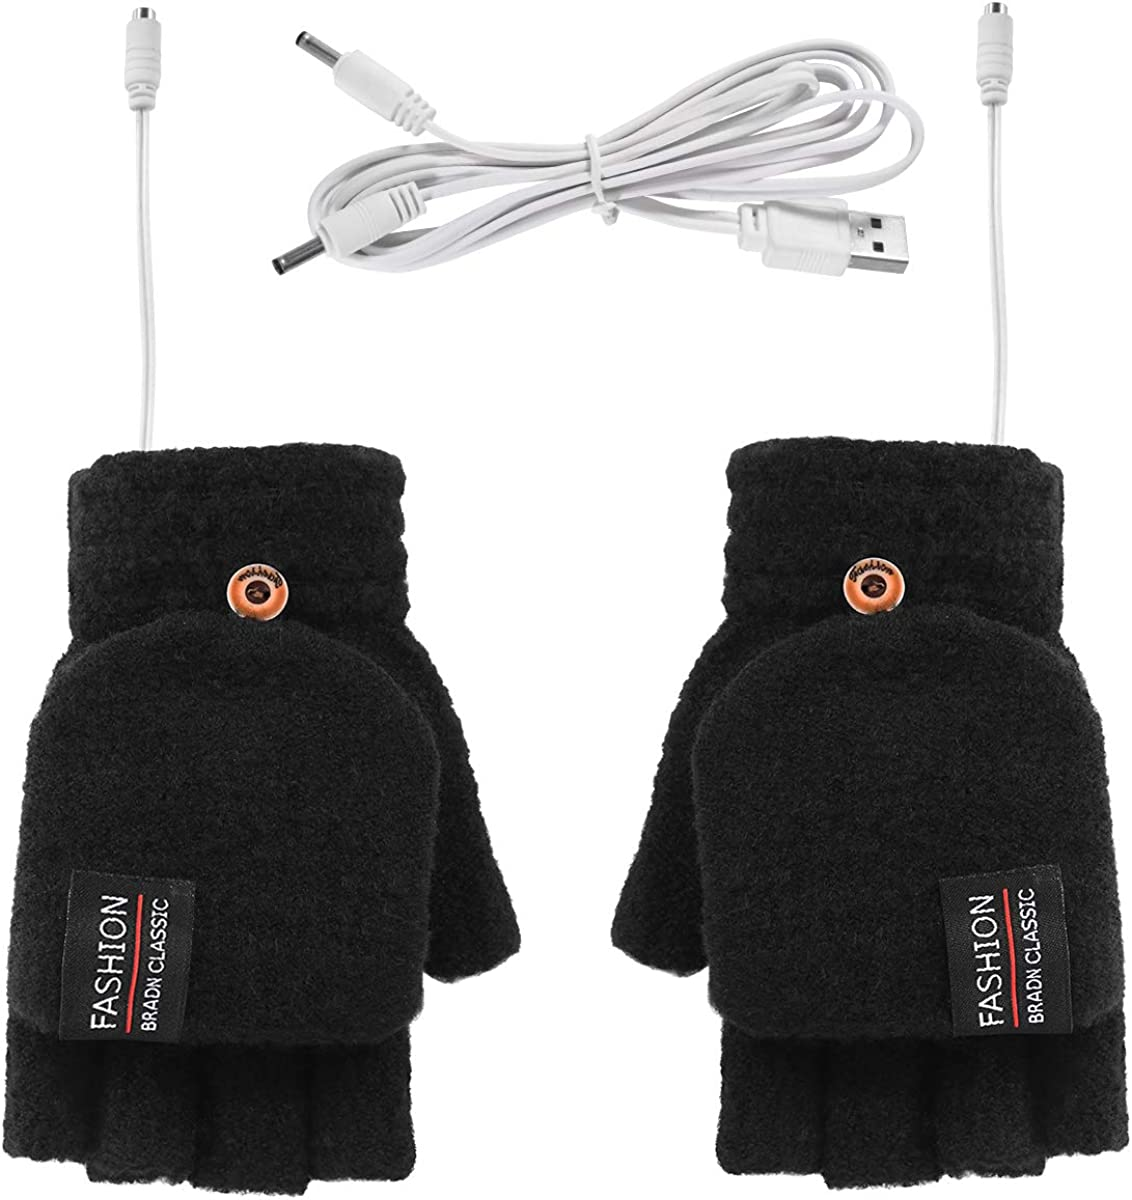 DERCLIVE USB Heated Gloves Winter Knitted Finger Mitten for Men and Women